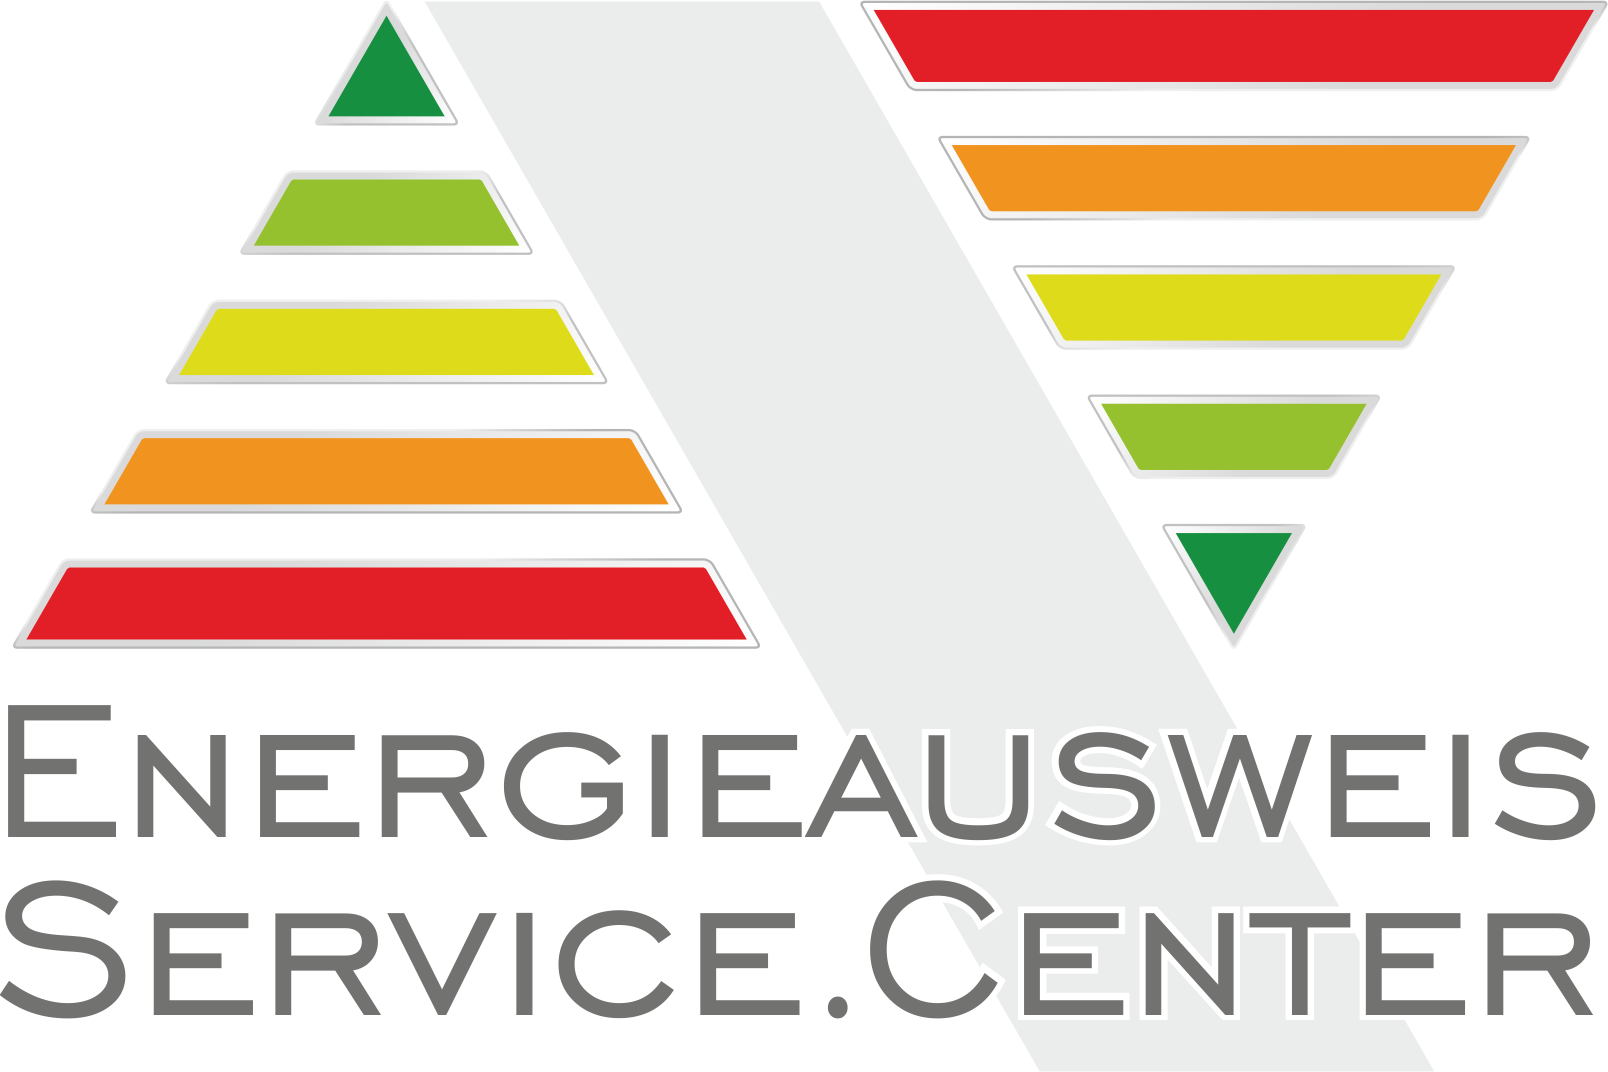 Energieausweis Service Center